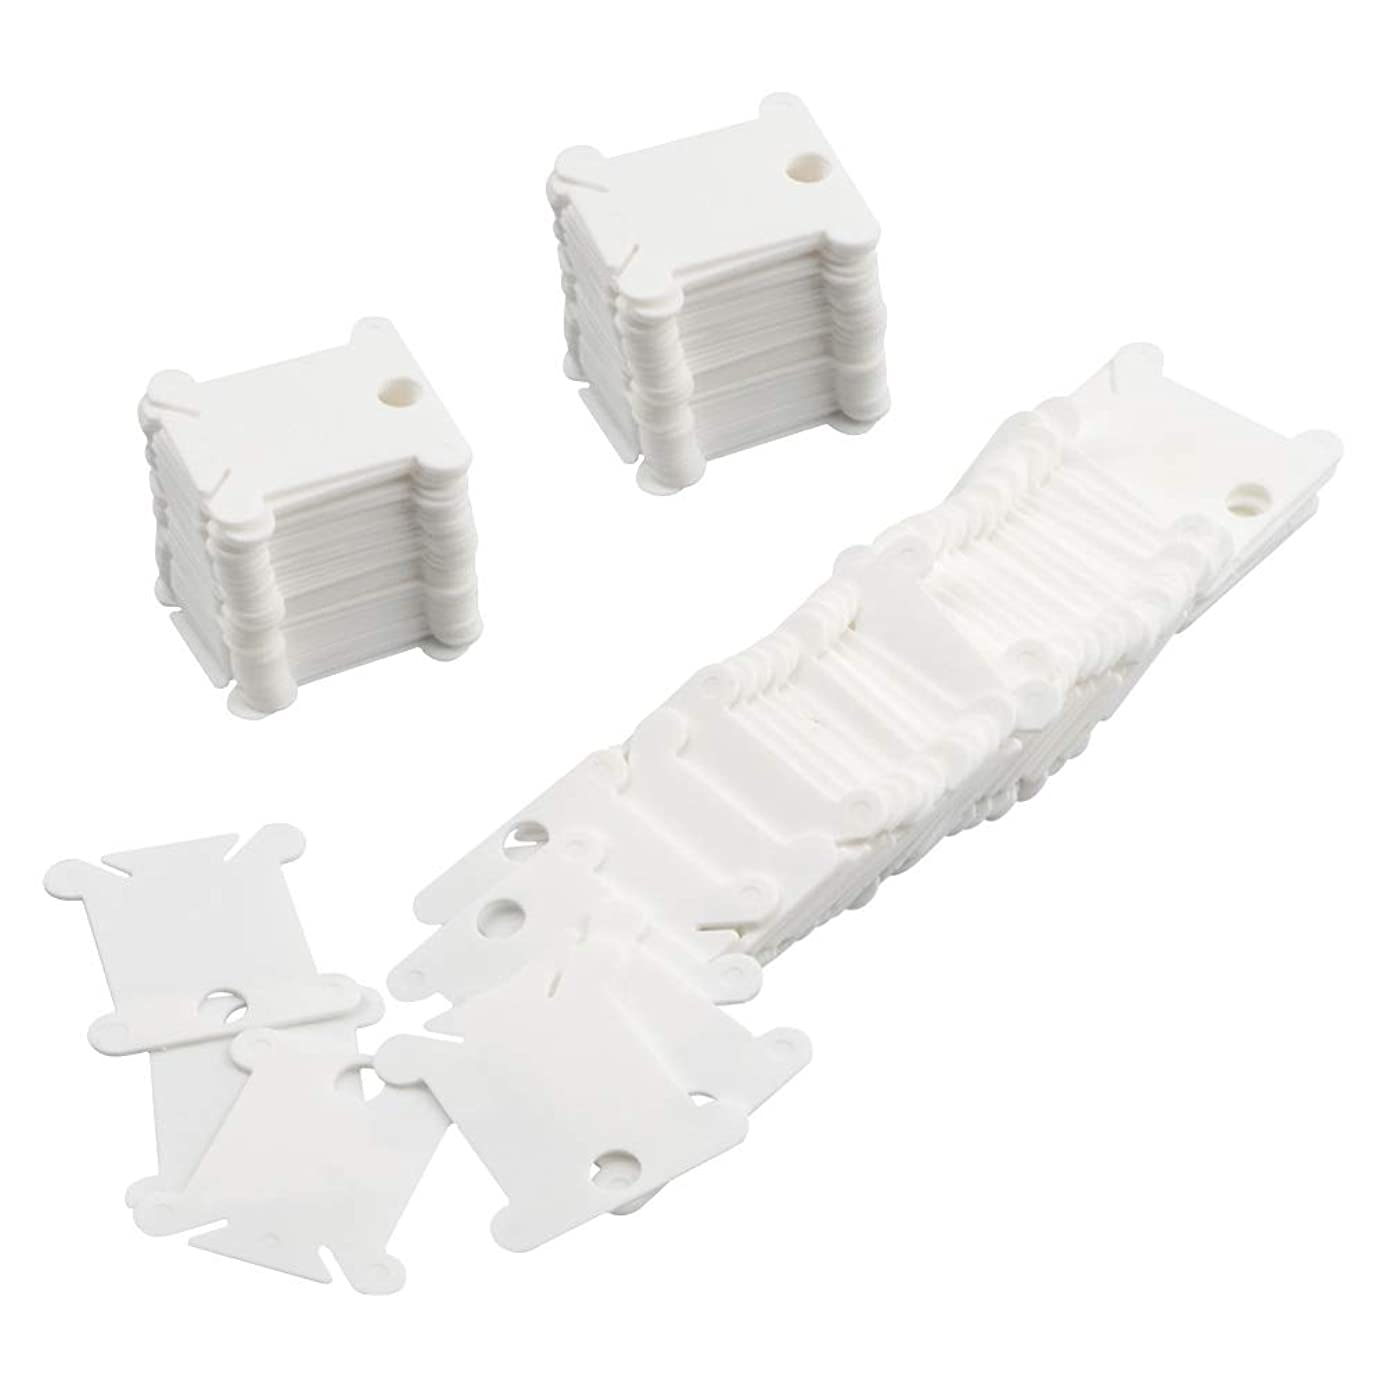 COCODE Plastic Floss Bobbins for Cross Stitch Embroidery Cotton Thread Craft DIY Sewing Storage, White, 120 Pieces